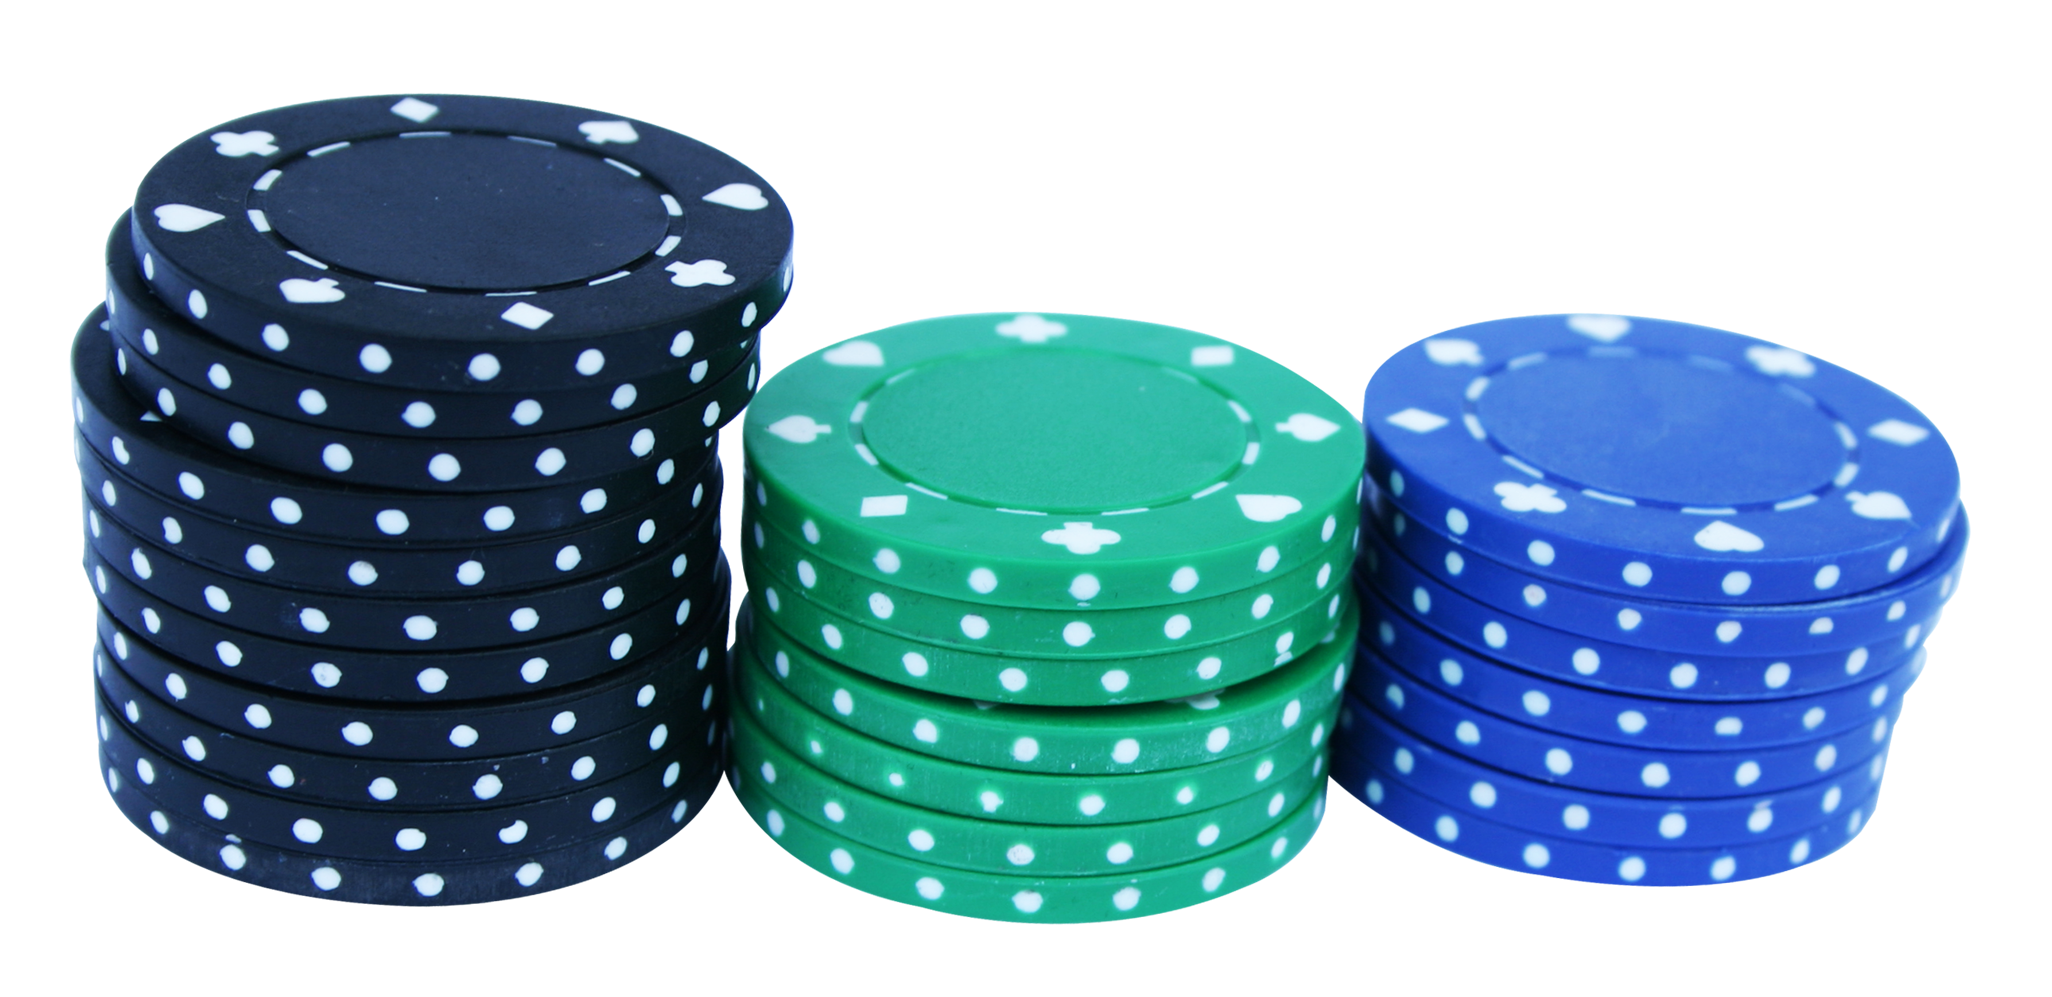 Poker Chips Png Image Poker Chips Play Slots Online Play Free Slots